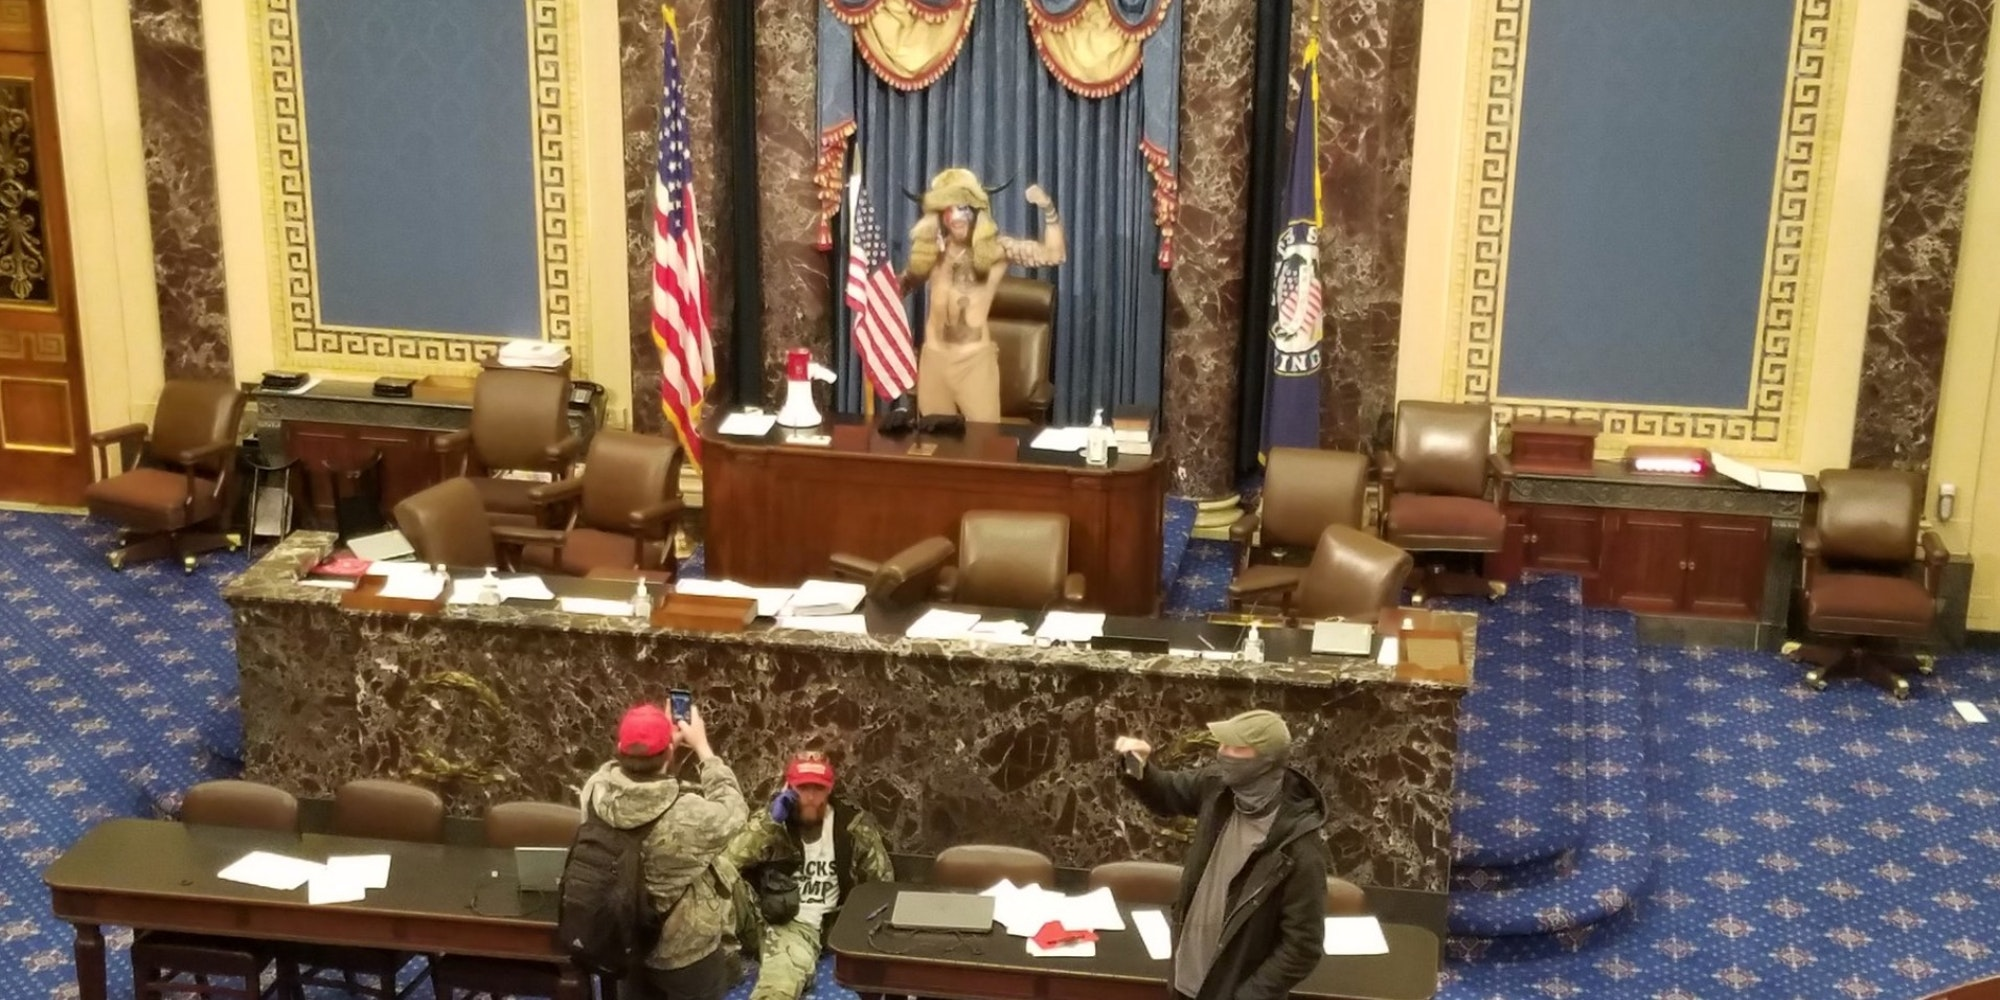 qanon supporter stands in the house of representatives